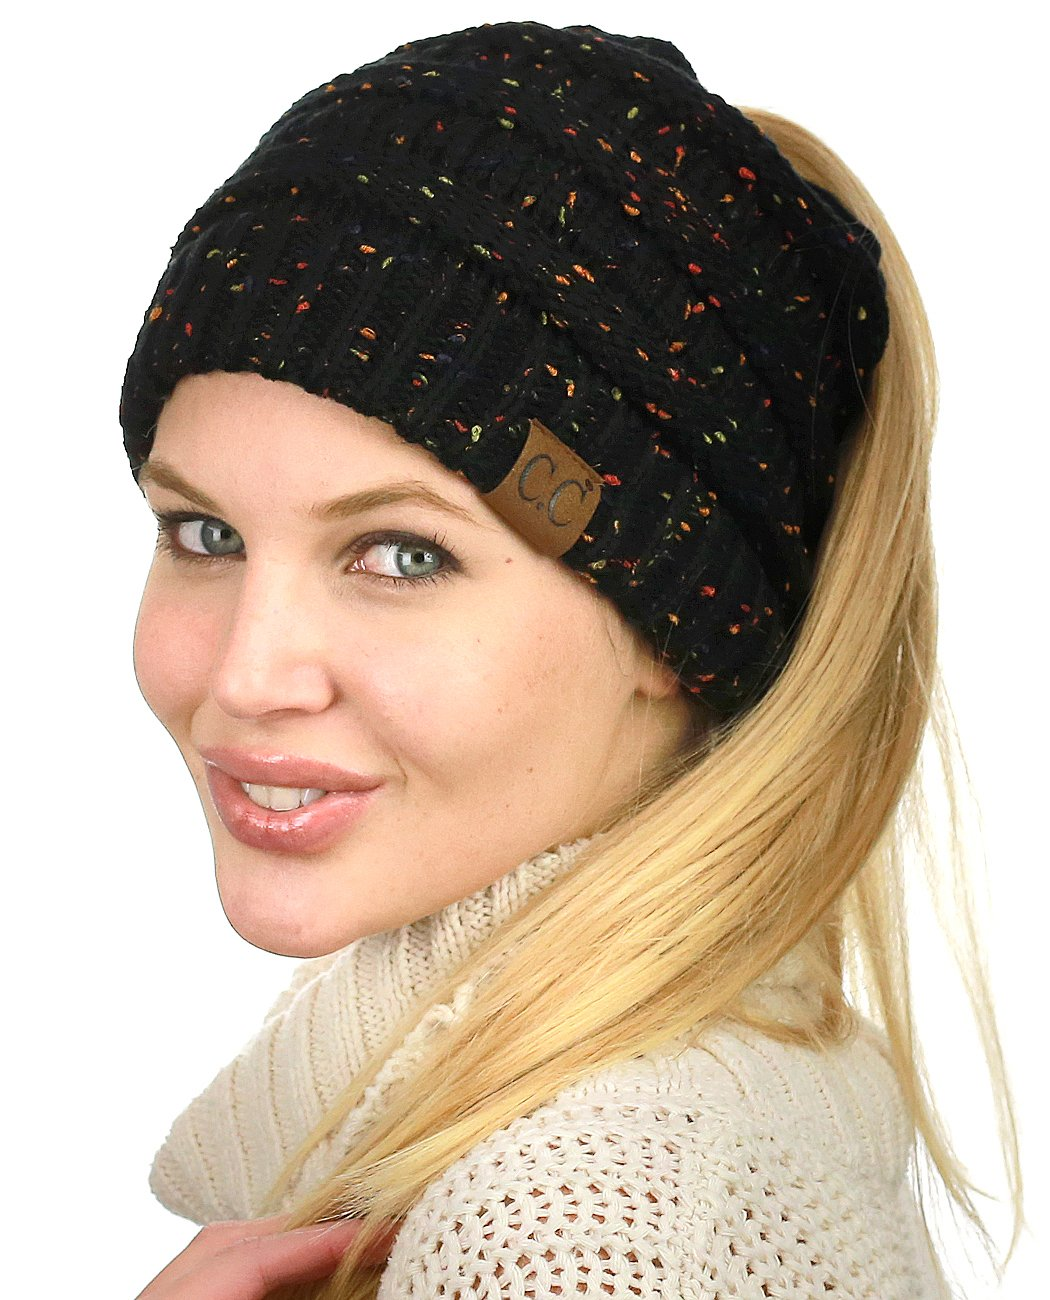 C.C BeanieTail Soft Stretch Cable Knit Messy High Bun Ponytail Beanie Hat, Confetti Black